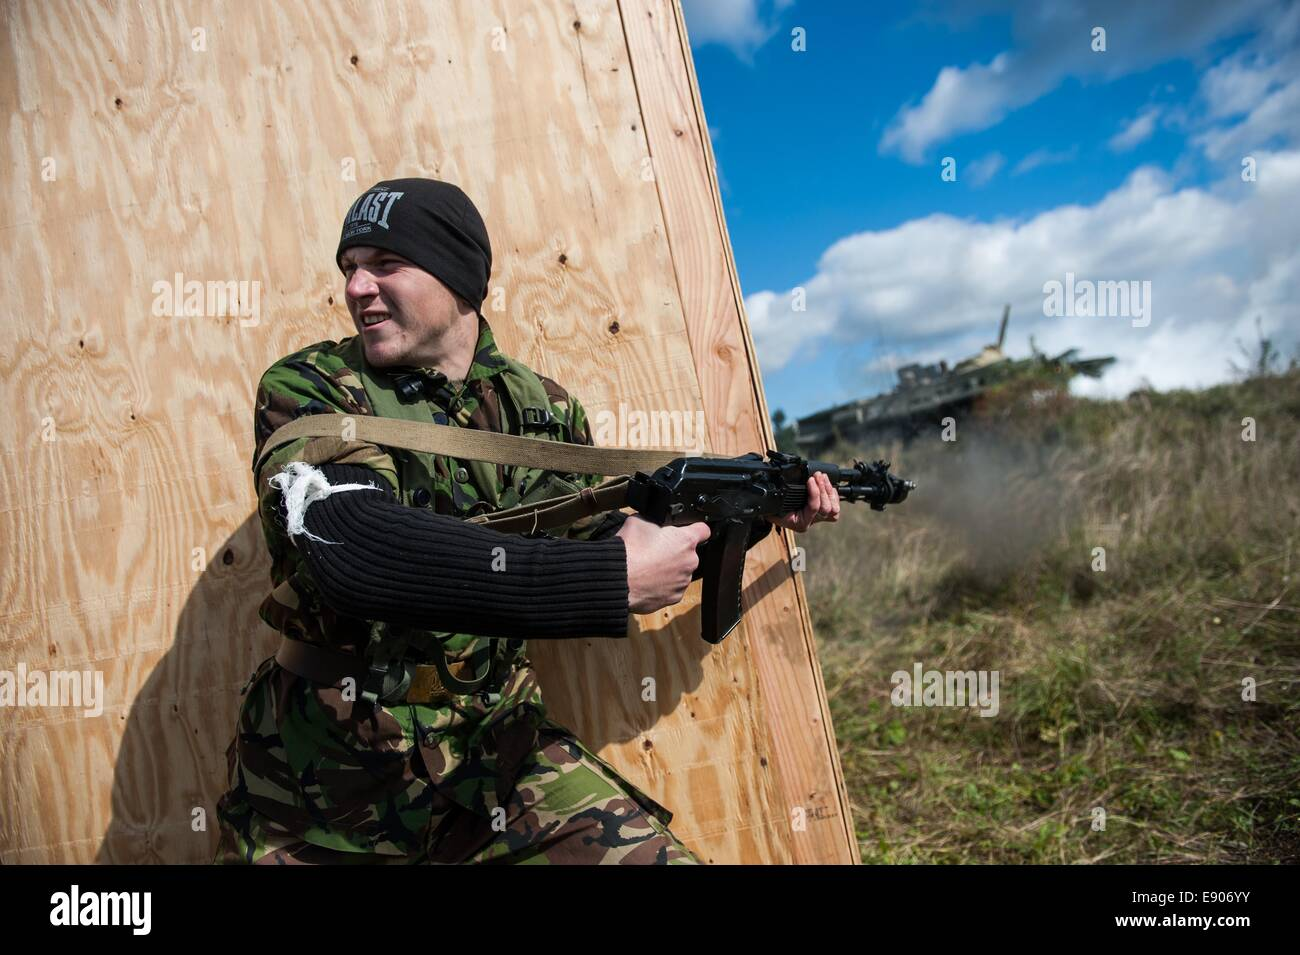 A Ukrainian military cadet acting as a simulated opposing force fires his rifle during a simulated high value target - Stock Image